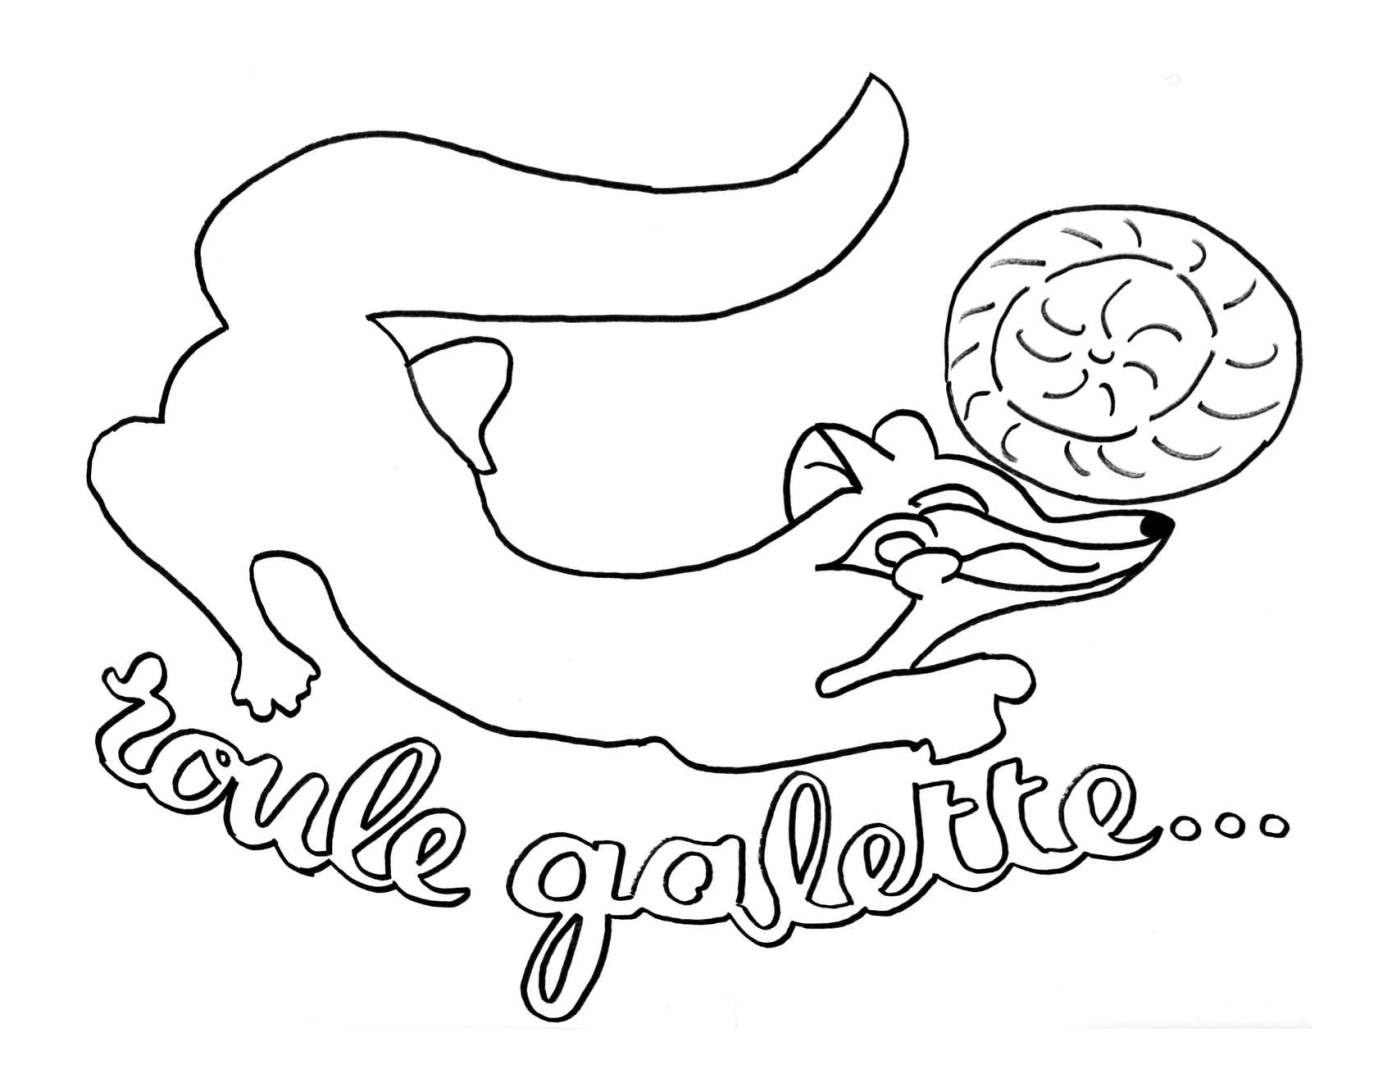 Coloriage204 coloriage roule galette - Coloriage roule galette maternelle ...